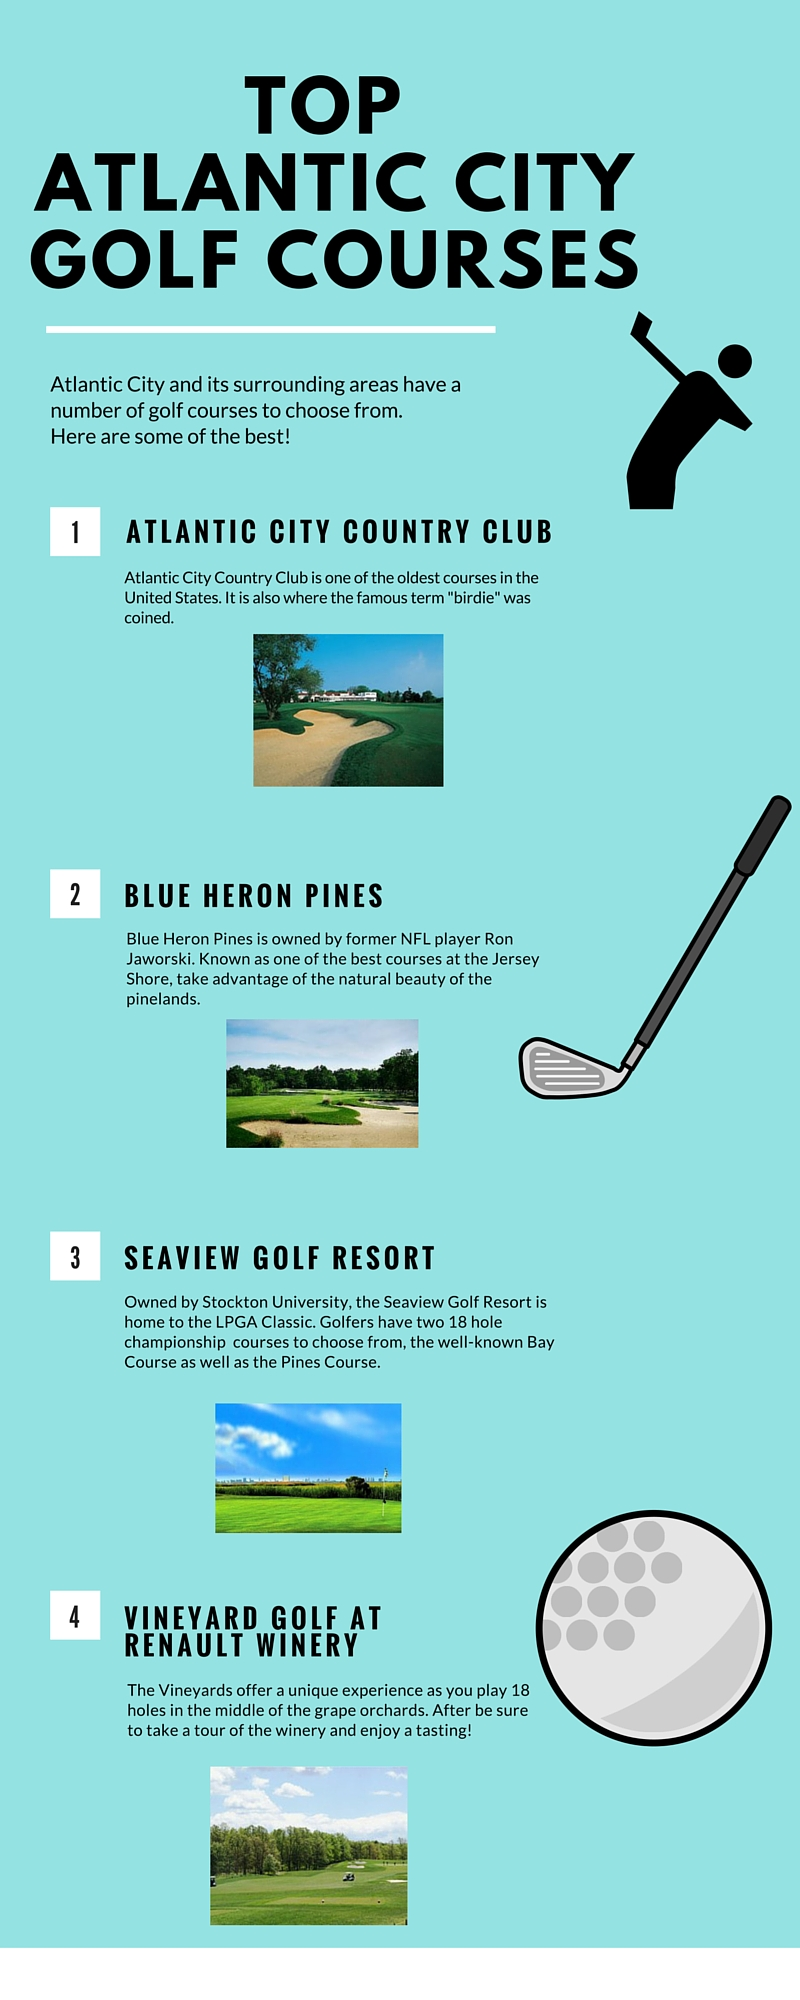 Top Atlantic City Golf Courses